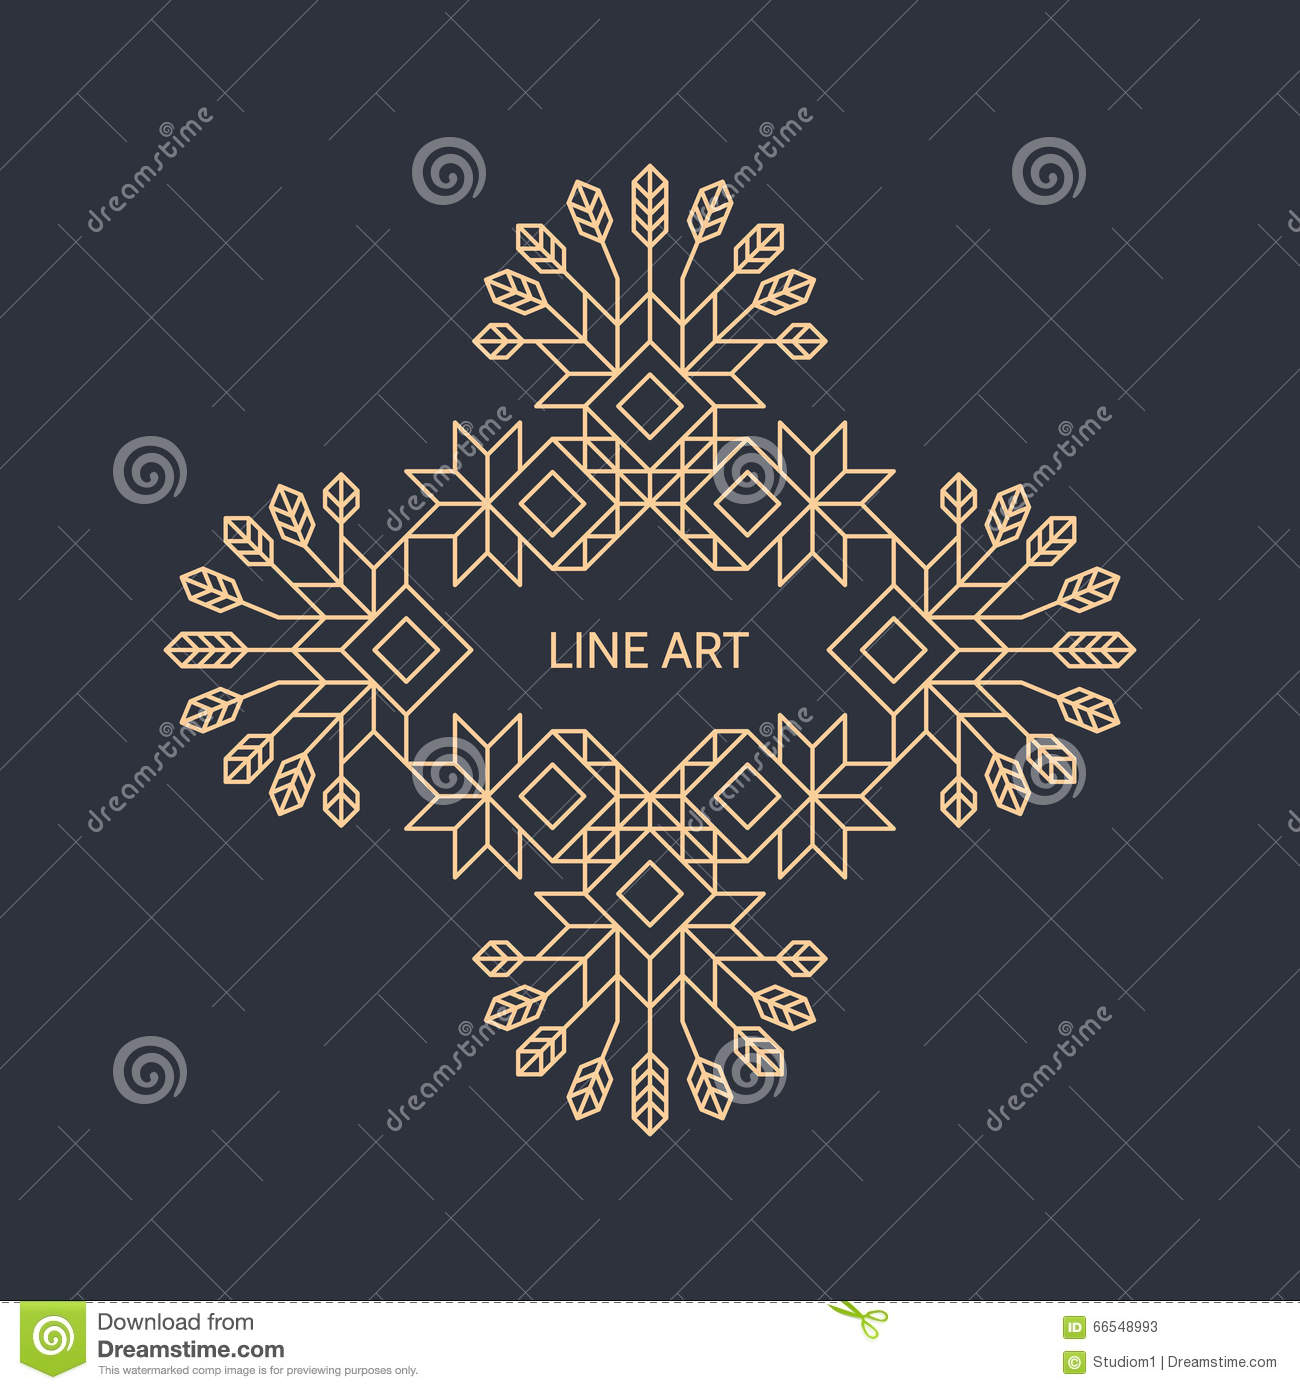 Line Art Text : Vector decorative line art frame geometric vintage style